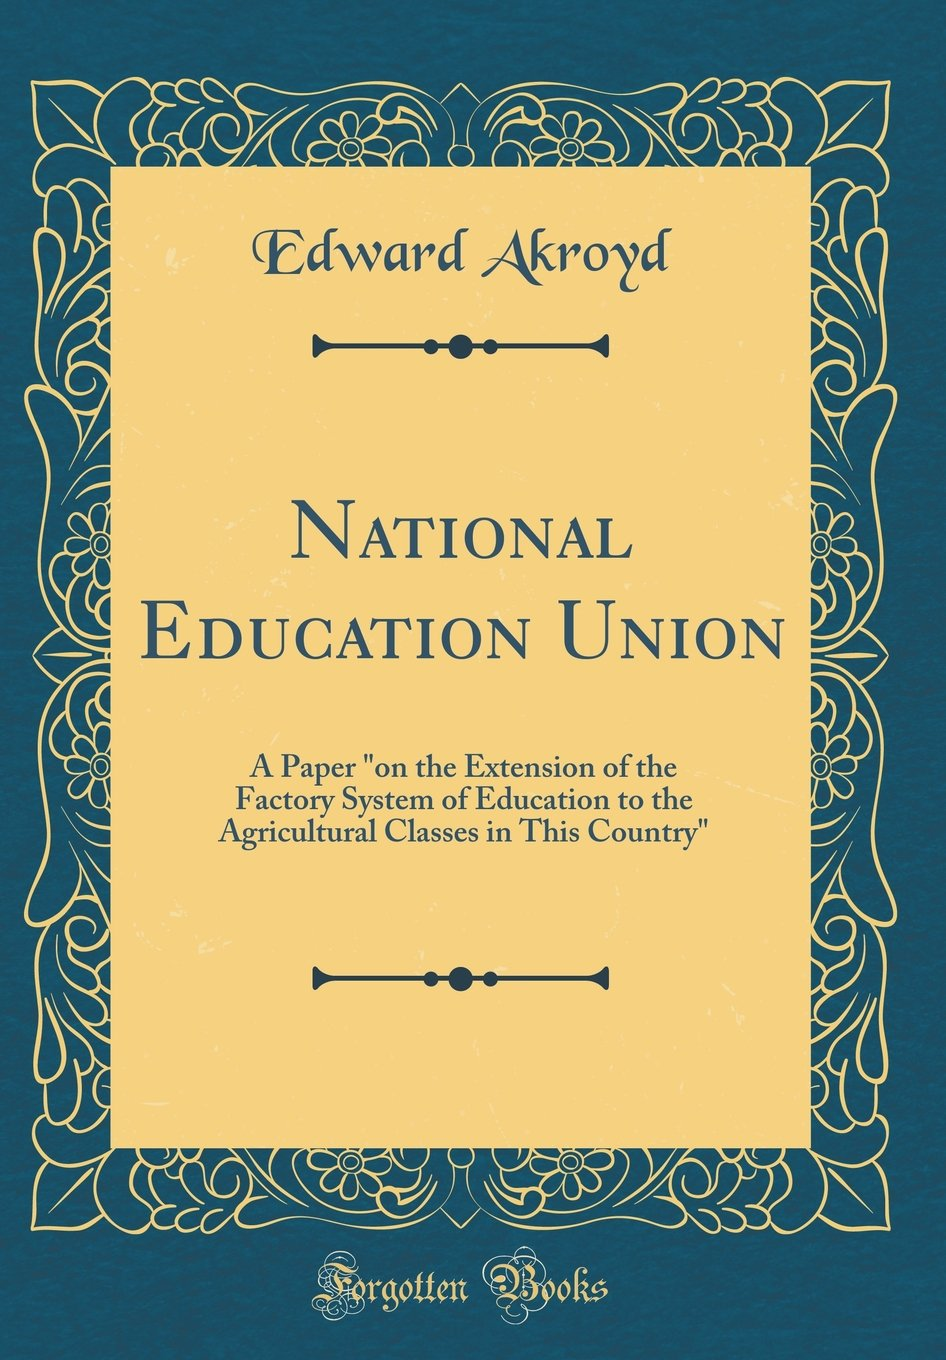 National Education Union: A Paper on the Extension of the Factory System of Education to the Agricultural Classes in This Country (Classic Reprint) PDF